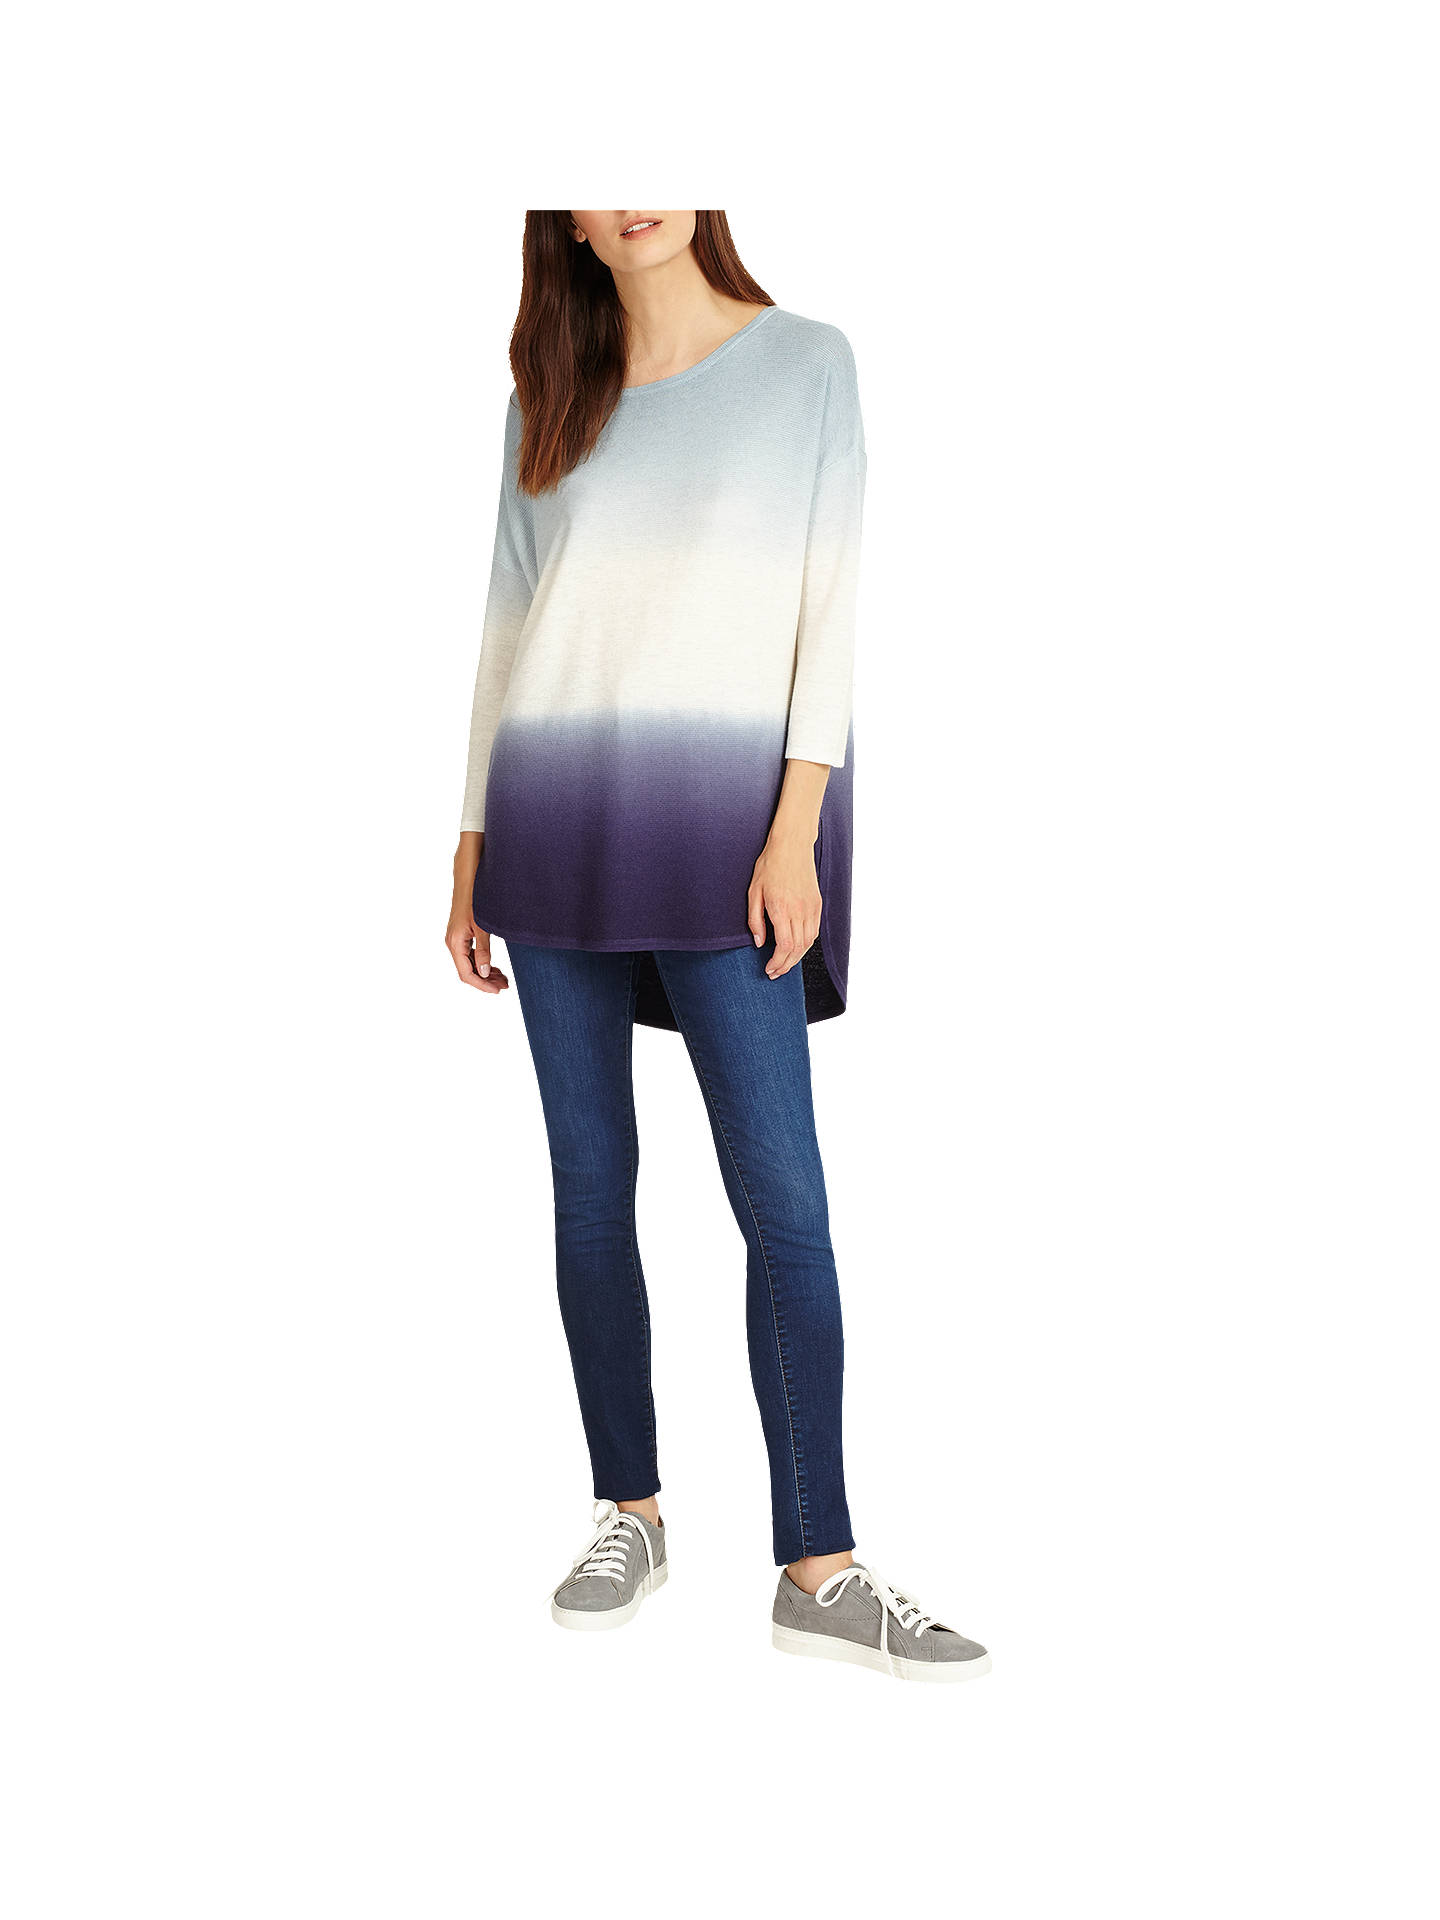 BuyPhase Eight Lynda Dip Dye Knitted Jumper, Blue/Ivory, XS Online at johnlewis.com